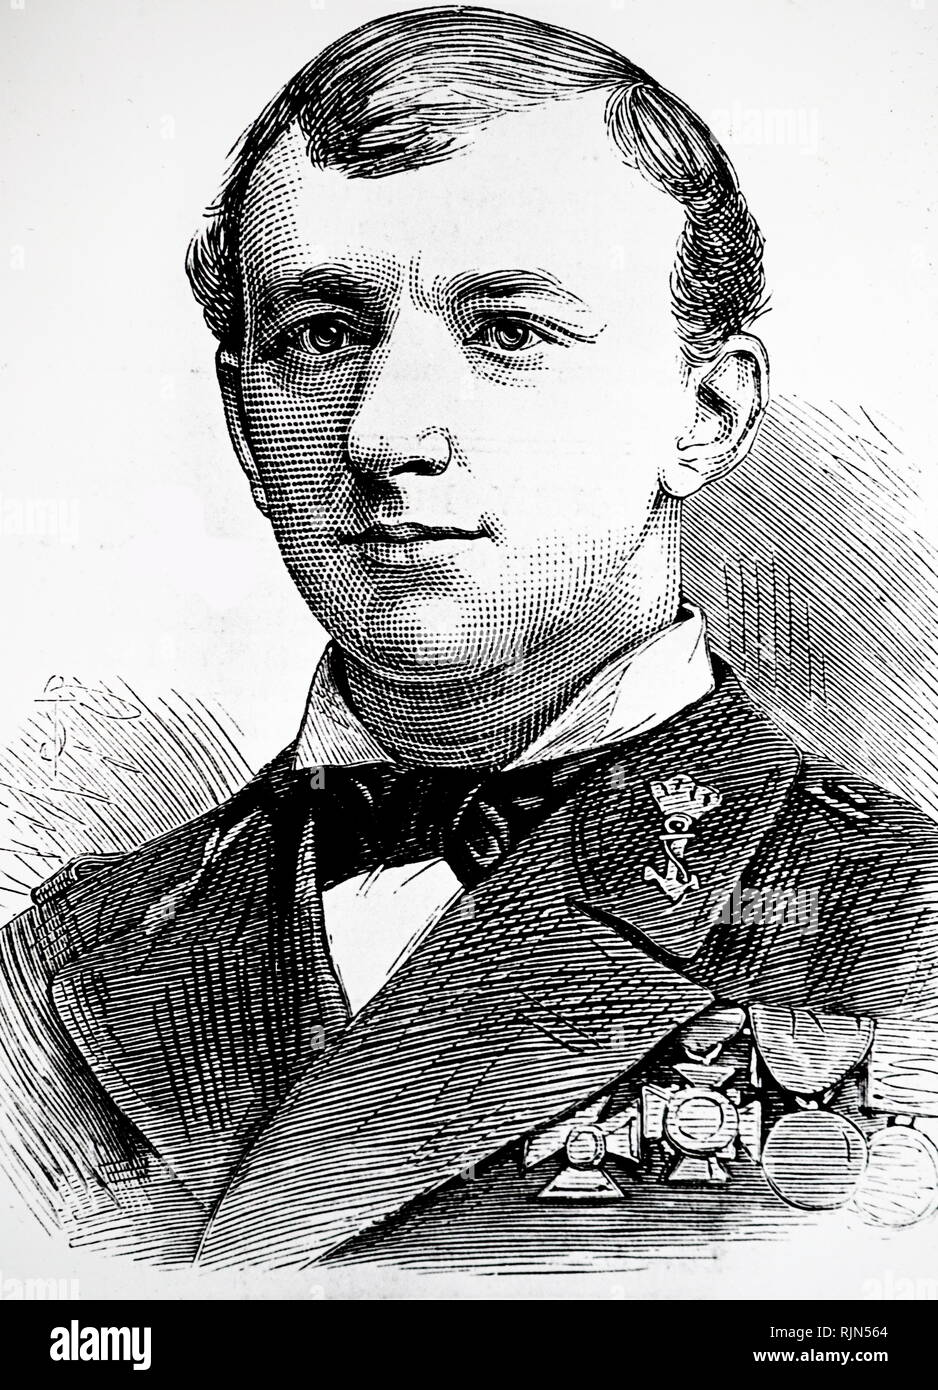 Illustration showing Lieut. Koelemans-Beynen of the Royal Dutch Navy who accompanied Sir Allen Young on two of his Arctic expeditions. From The Illustrated London News, January 1880 - Stock Image